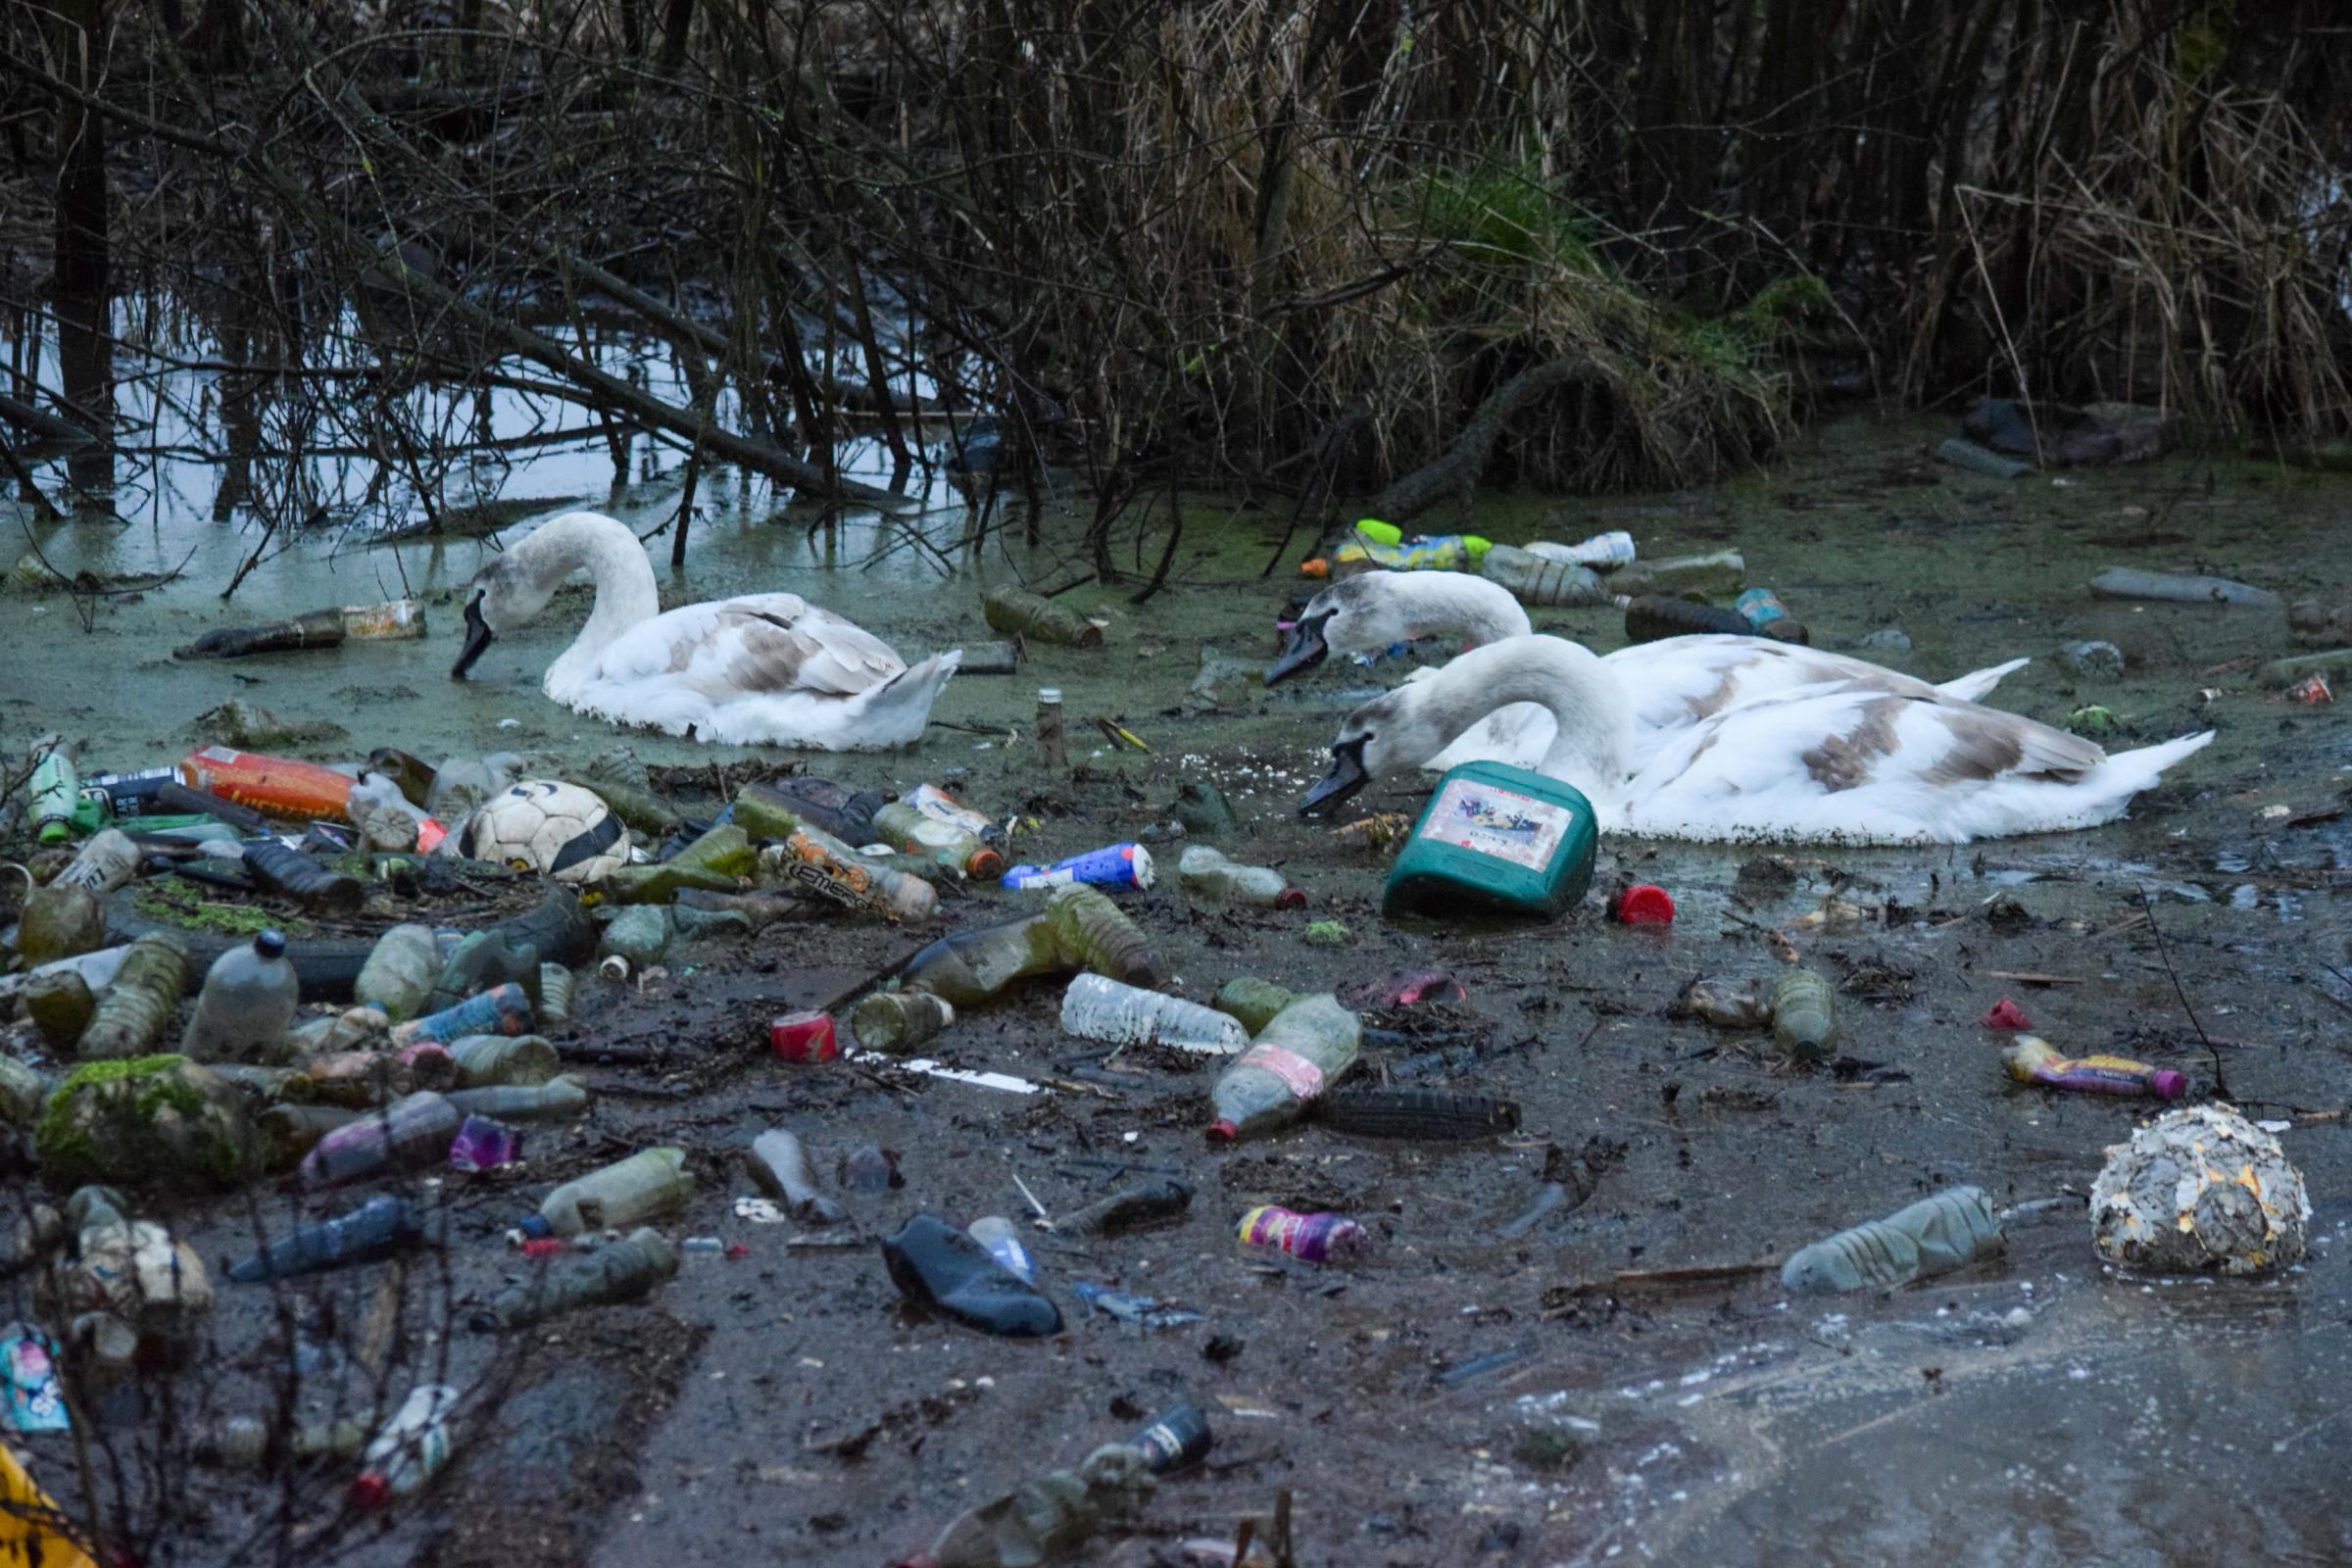 Huge community clean up to take place after shocking picture of swans in filthy canal